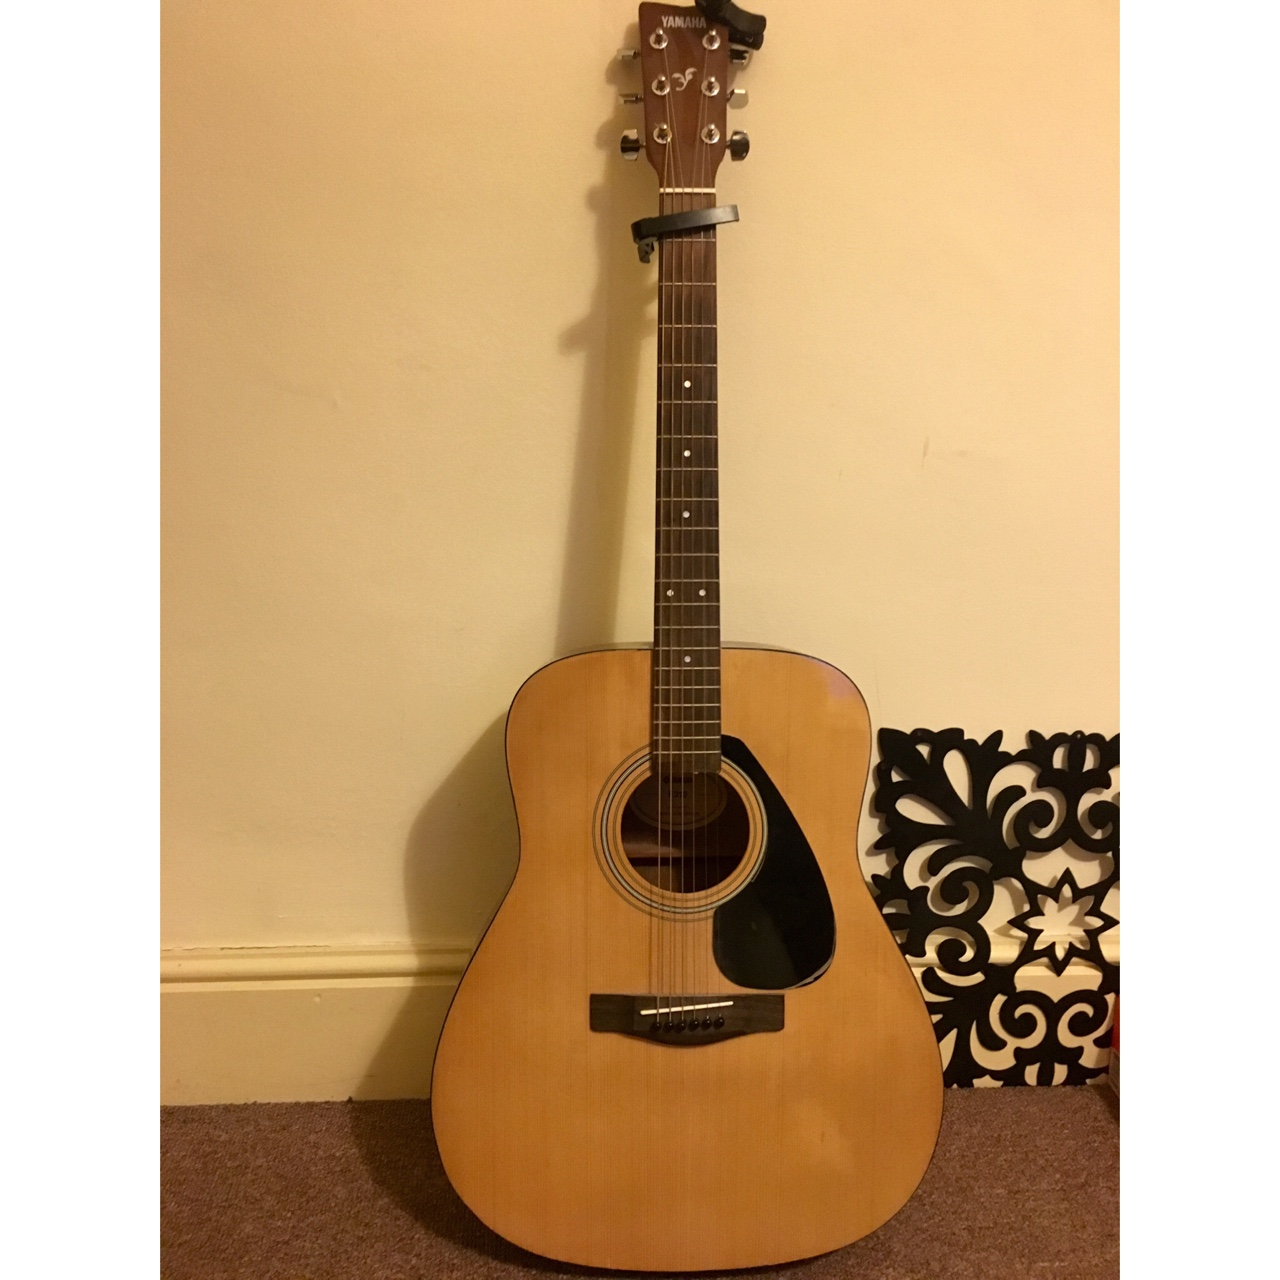 A used Yamaha f310 guitar perfect for beginners!    - Depop